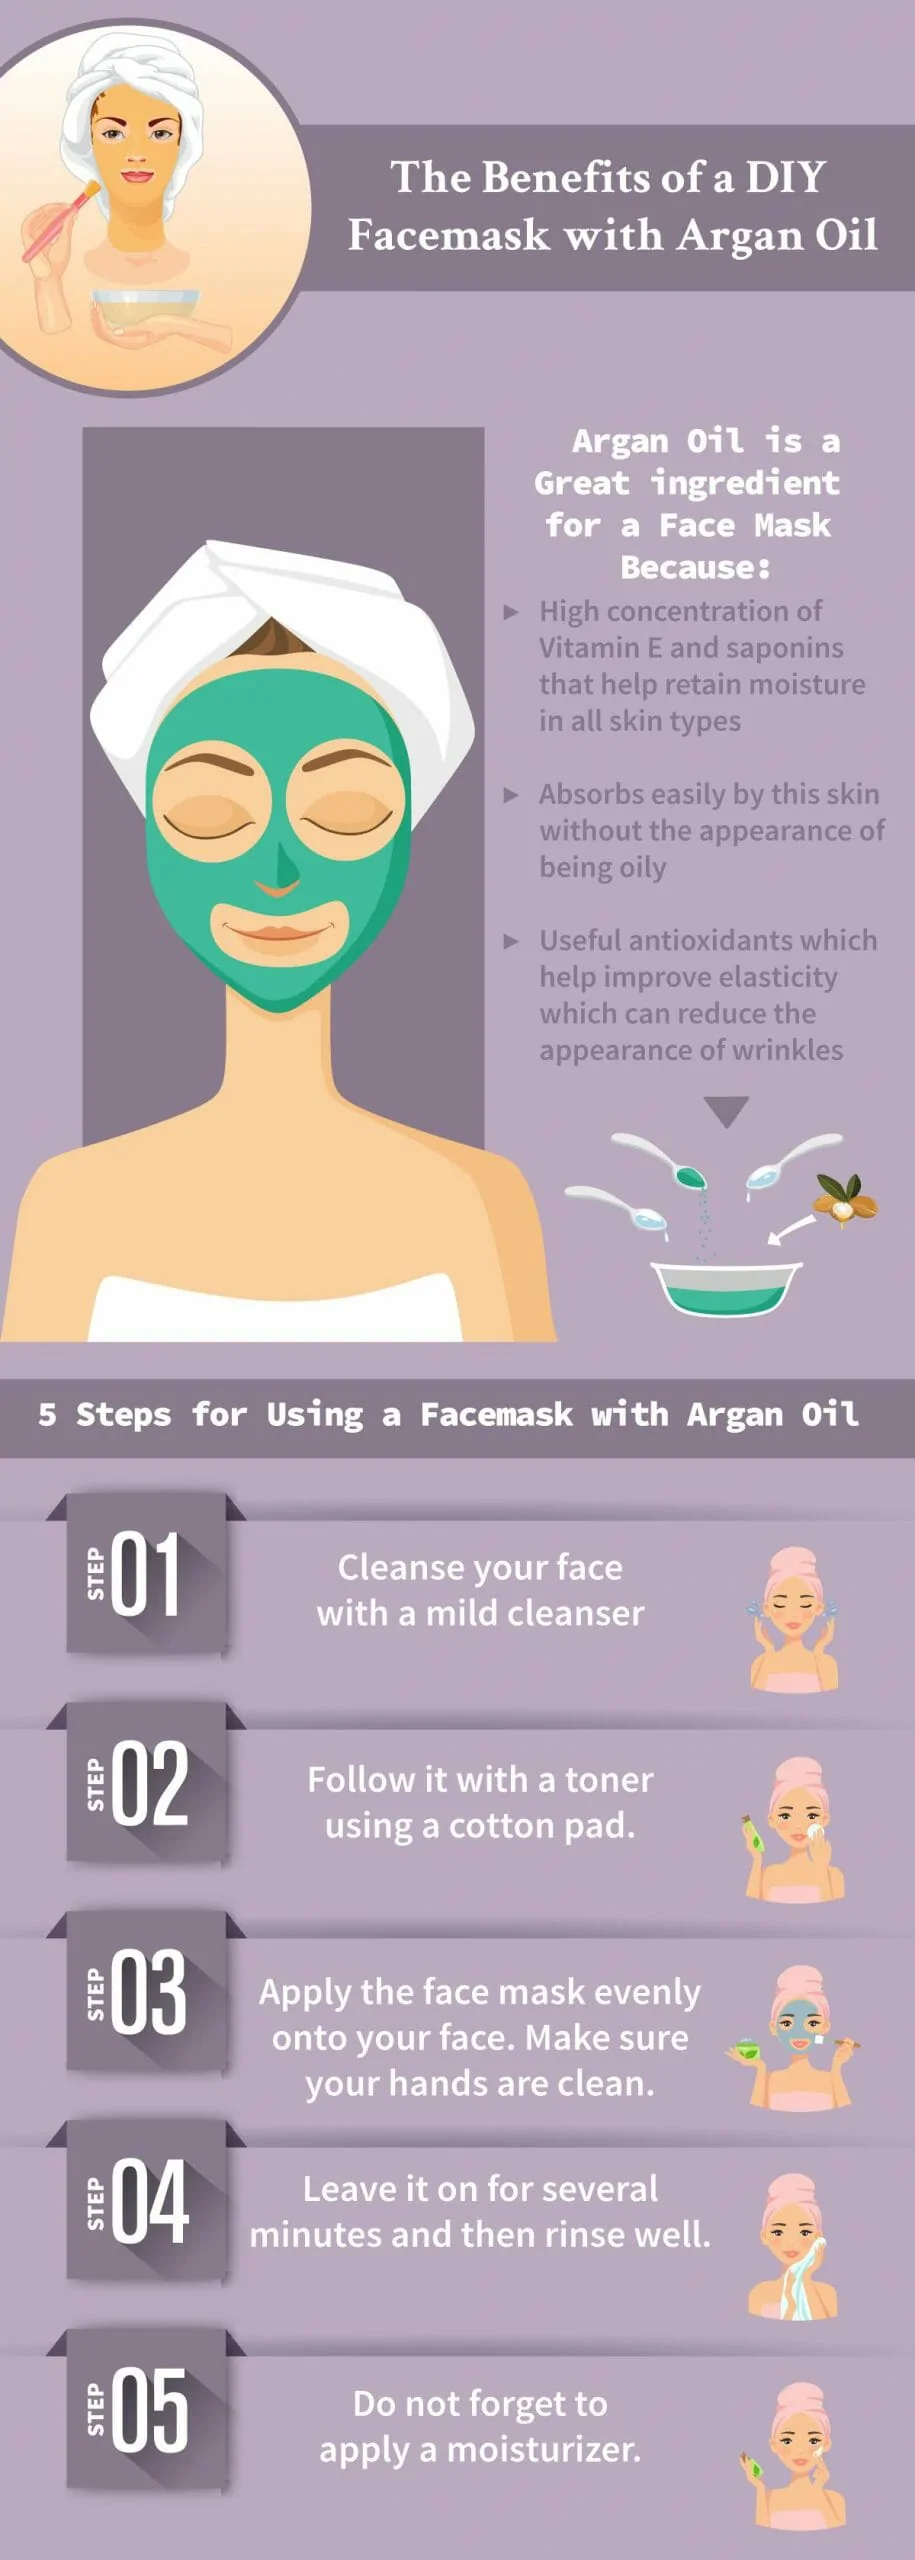 Argan Oil and Face Mask